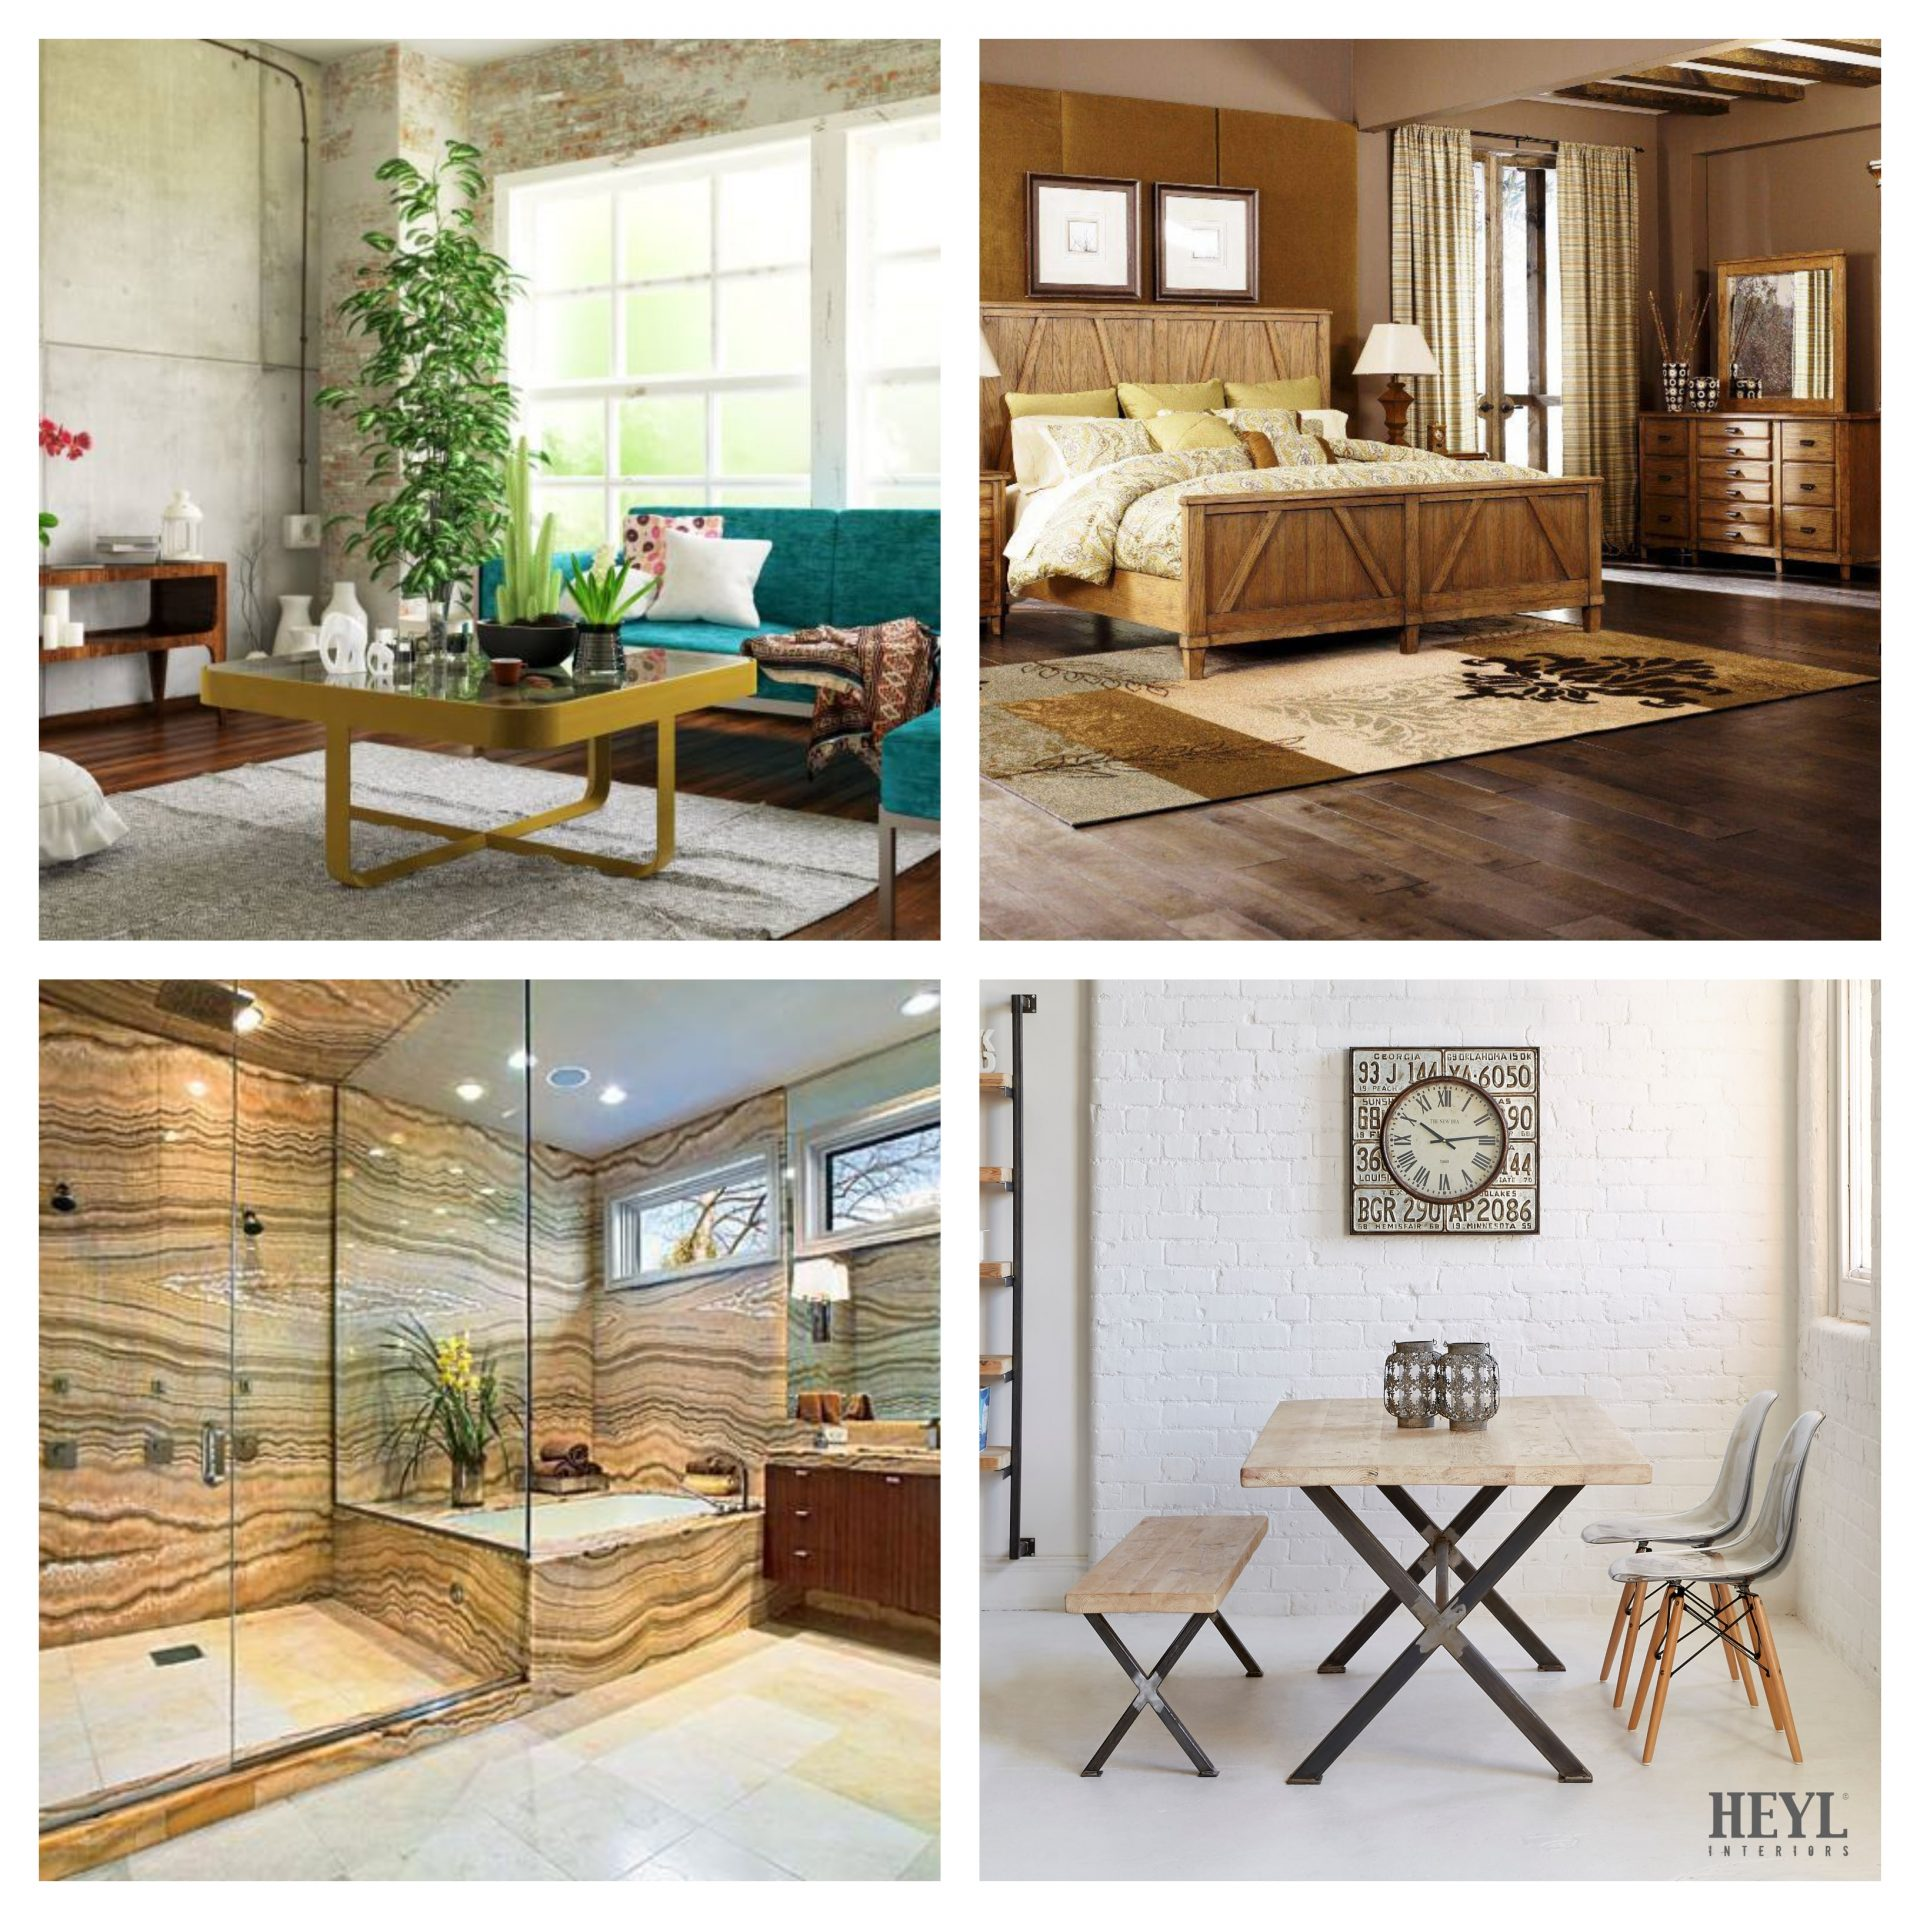 Our Top 4 Design Trends In 2019 Incorporating Natural Materials Heyl Interiors